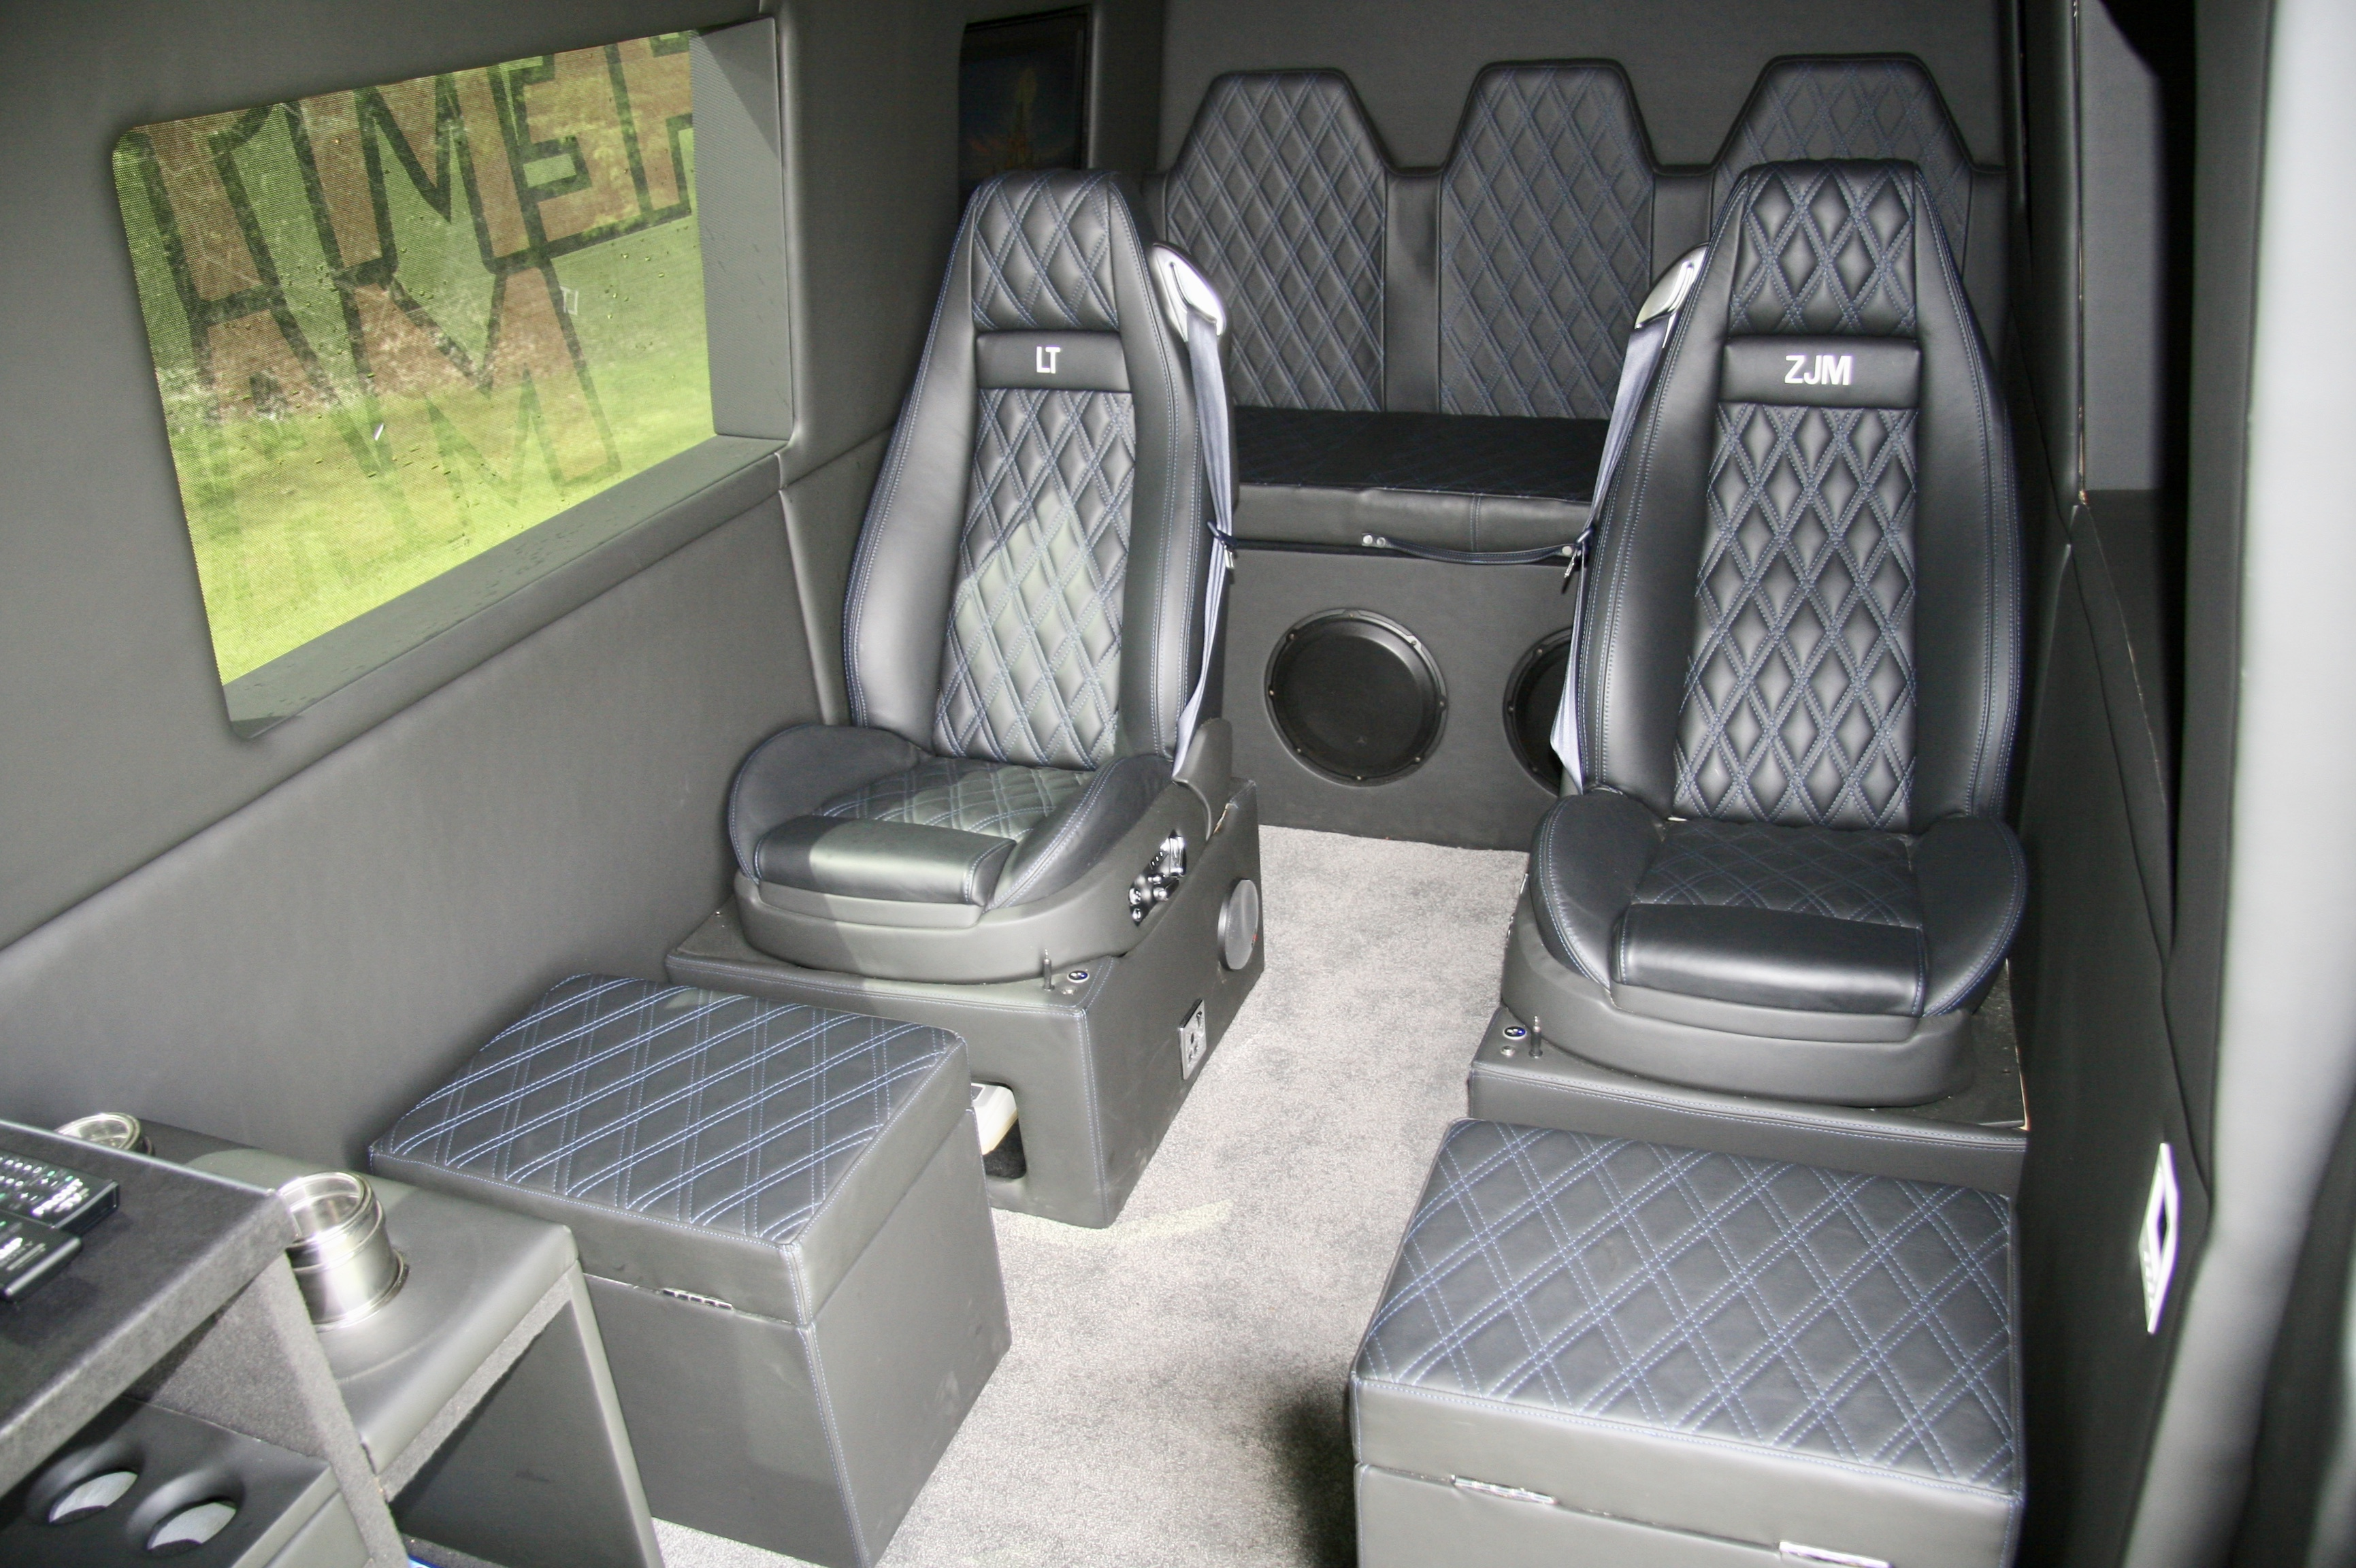 The seats feature leather quilting